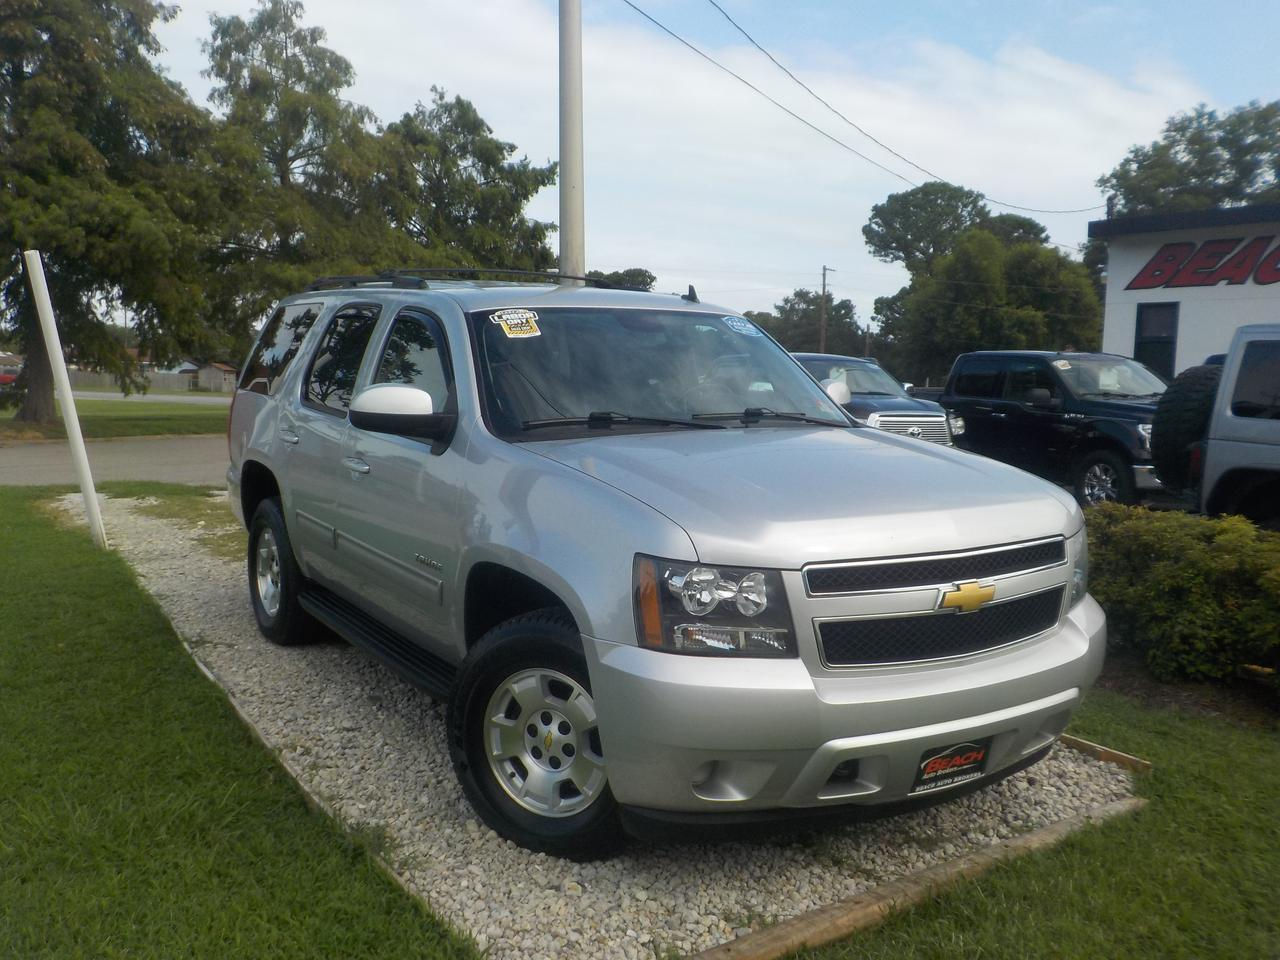 2013 Chevrolet Tahoe Ls 4x4 Warranty Third Row Sirius Radio Onstar 1 Owner